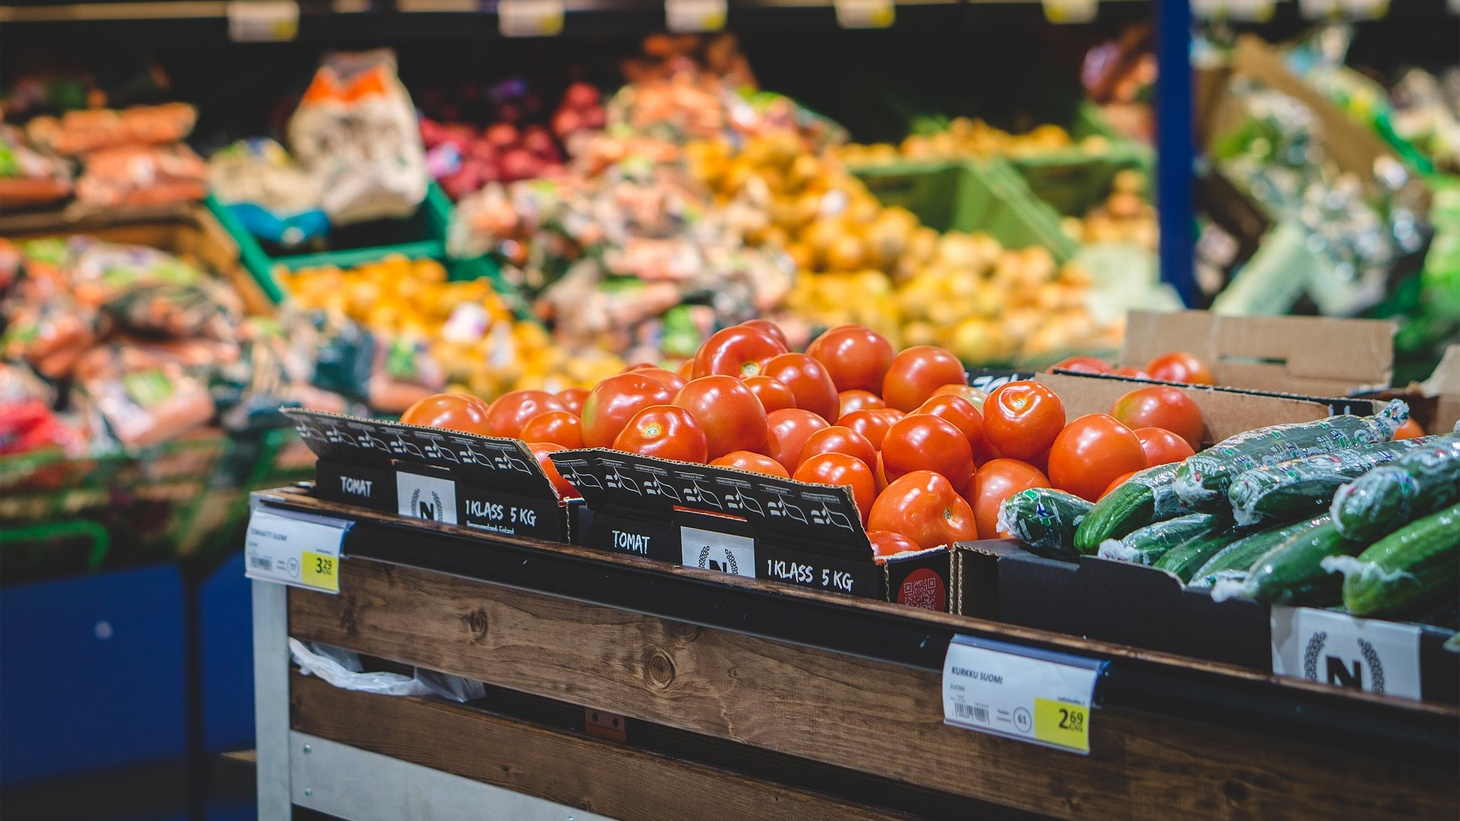 Vegetables are eligible purchases under food stamps.